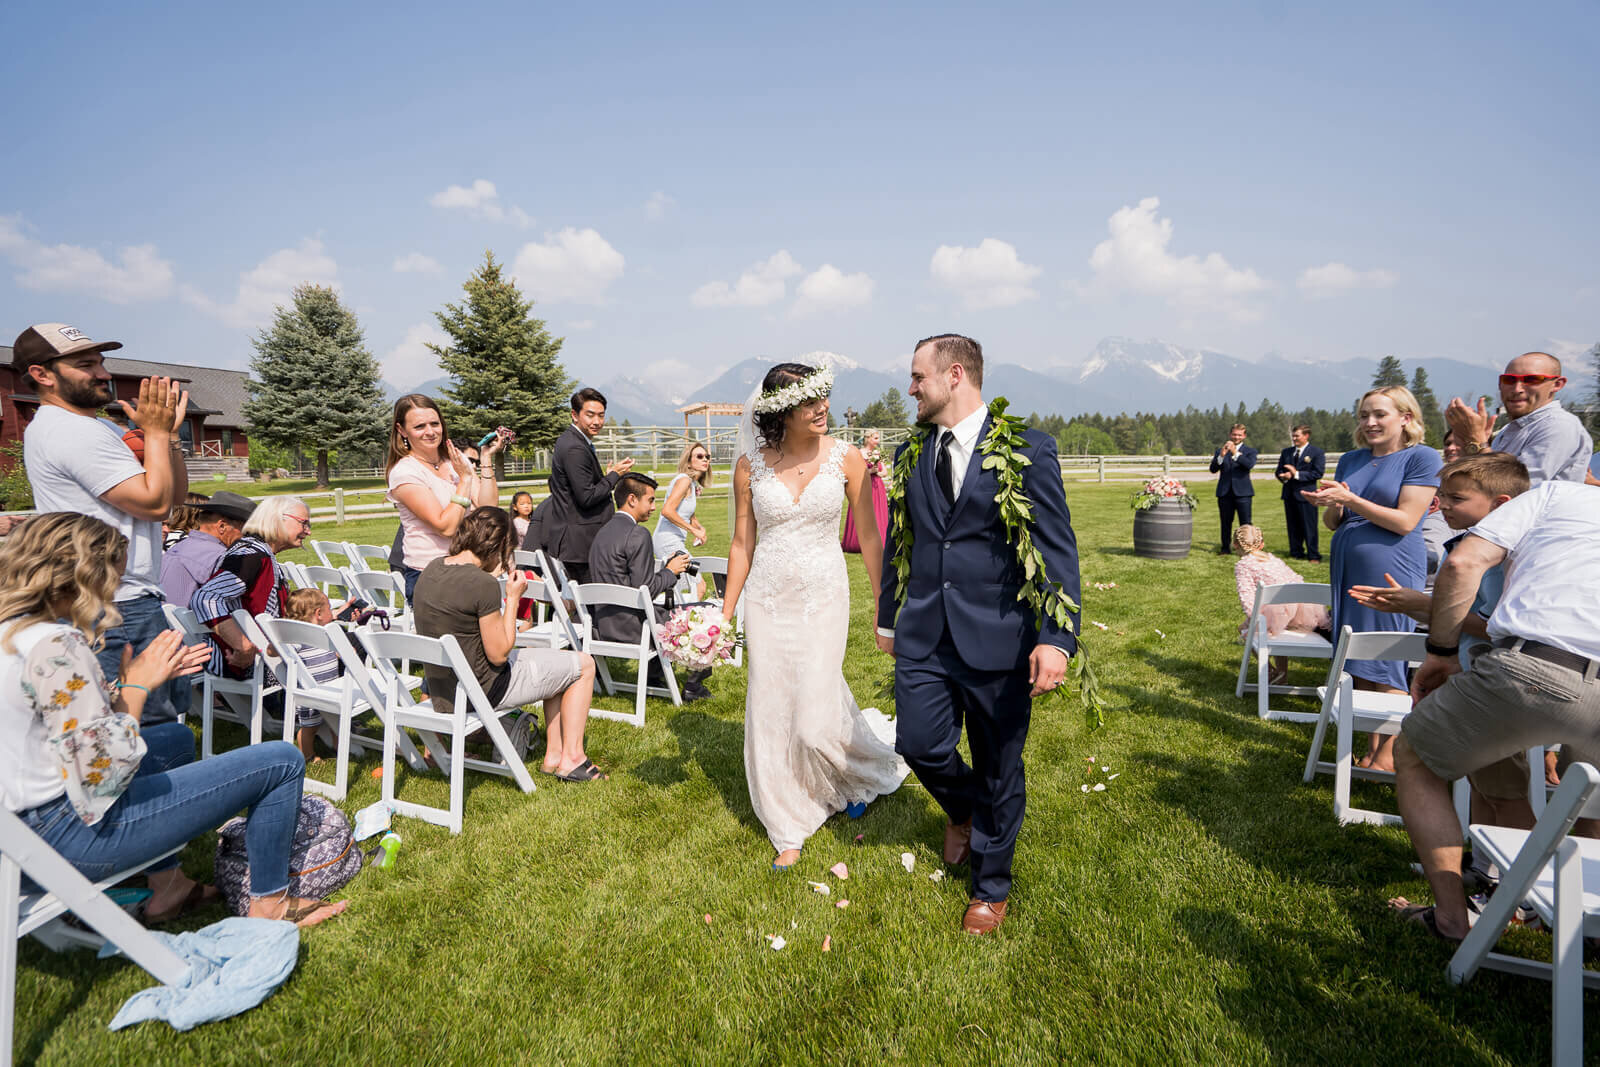 Montana-Wedding-Venue280